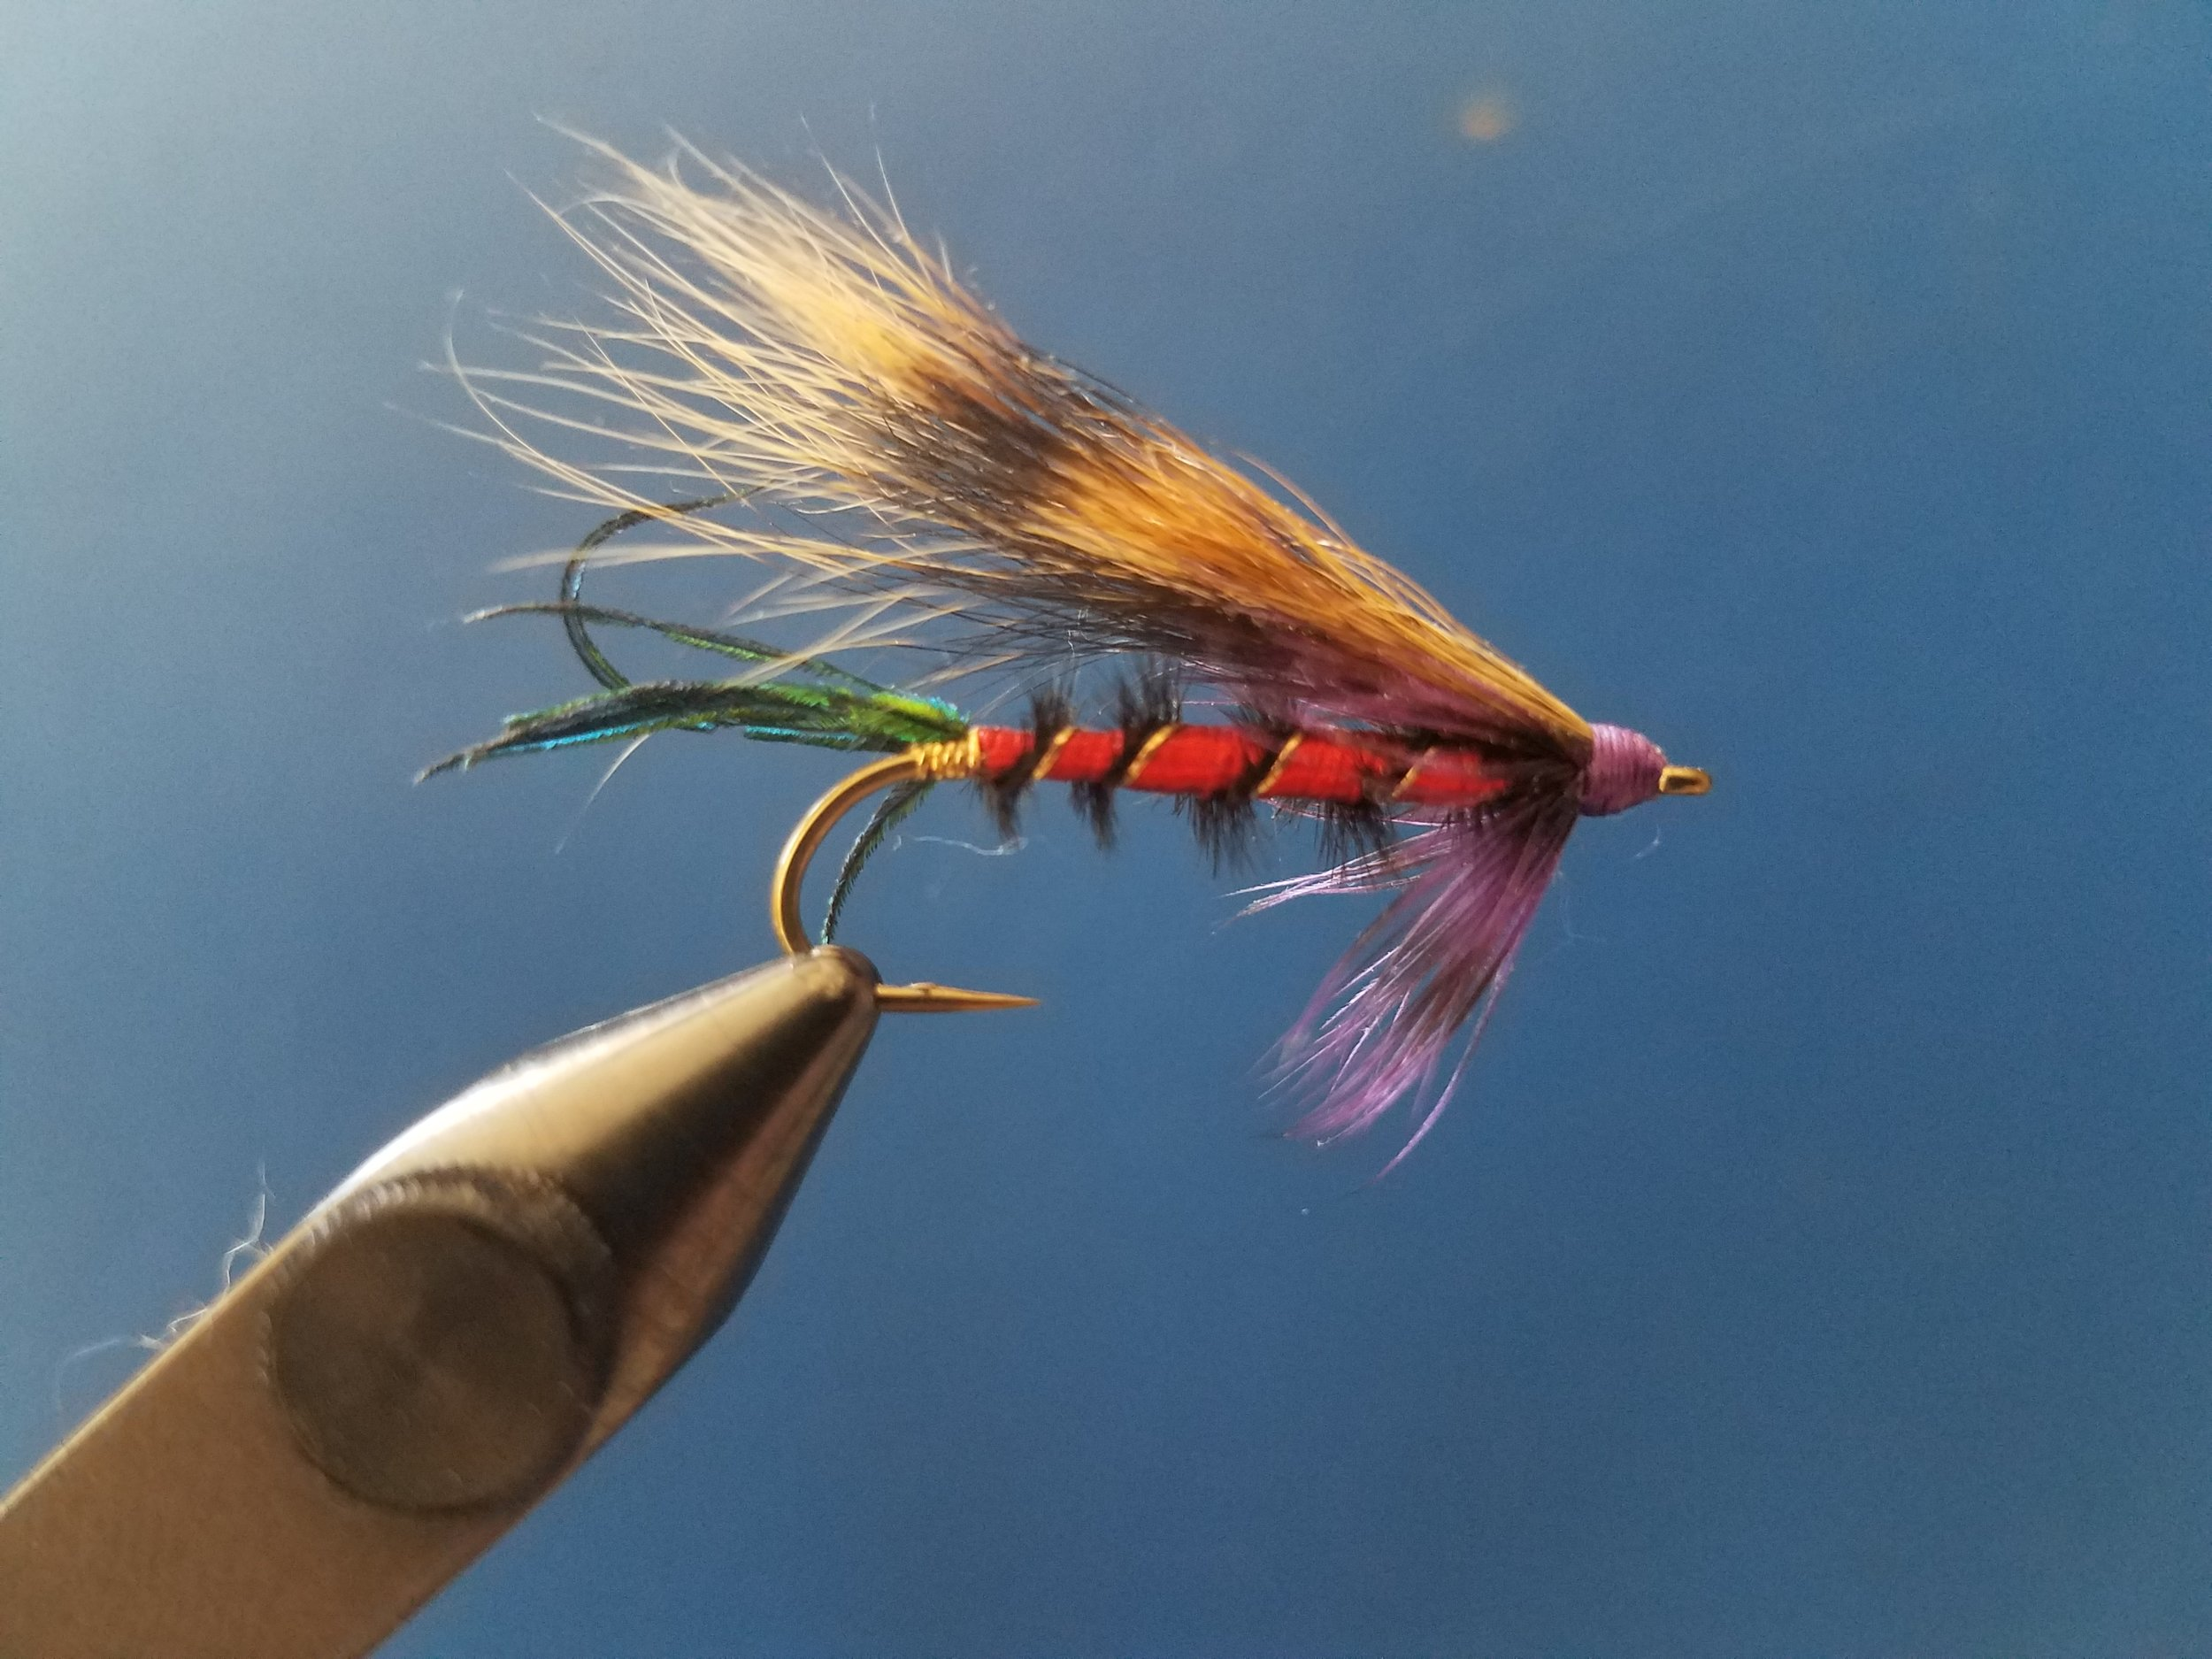 Spring 2019: We have been collaborating with Downeast Salmon Federation to provide free fly-tying workshops across Hancock and Washington Counties. Find out when the next workshop is happening on  our Events page here  and read about what these workshops are like  here .